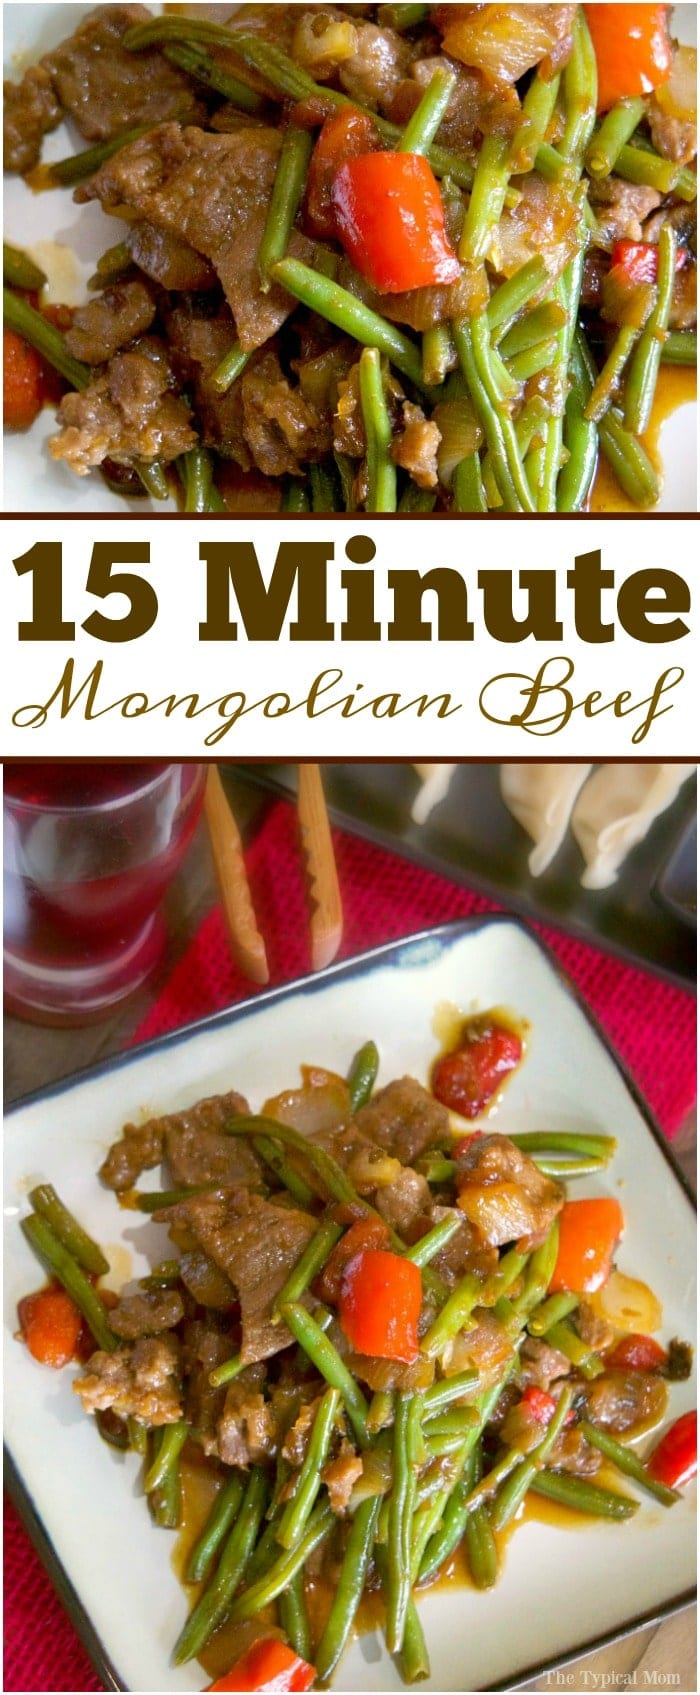 Easy 15 minute Mongolian Beef and dumplings that taste amazing! Perfect dinner for two idea. Really easy meals to make for your family too, my kids love it.